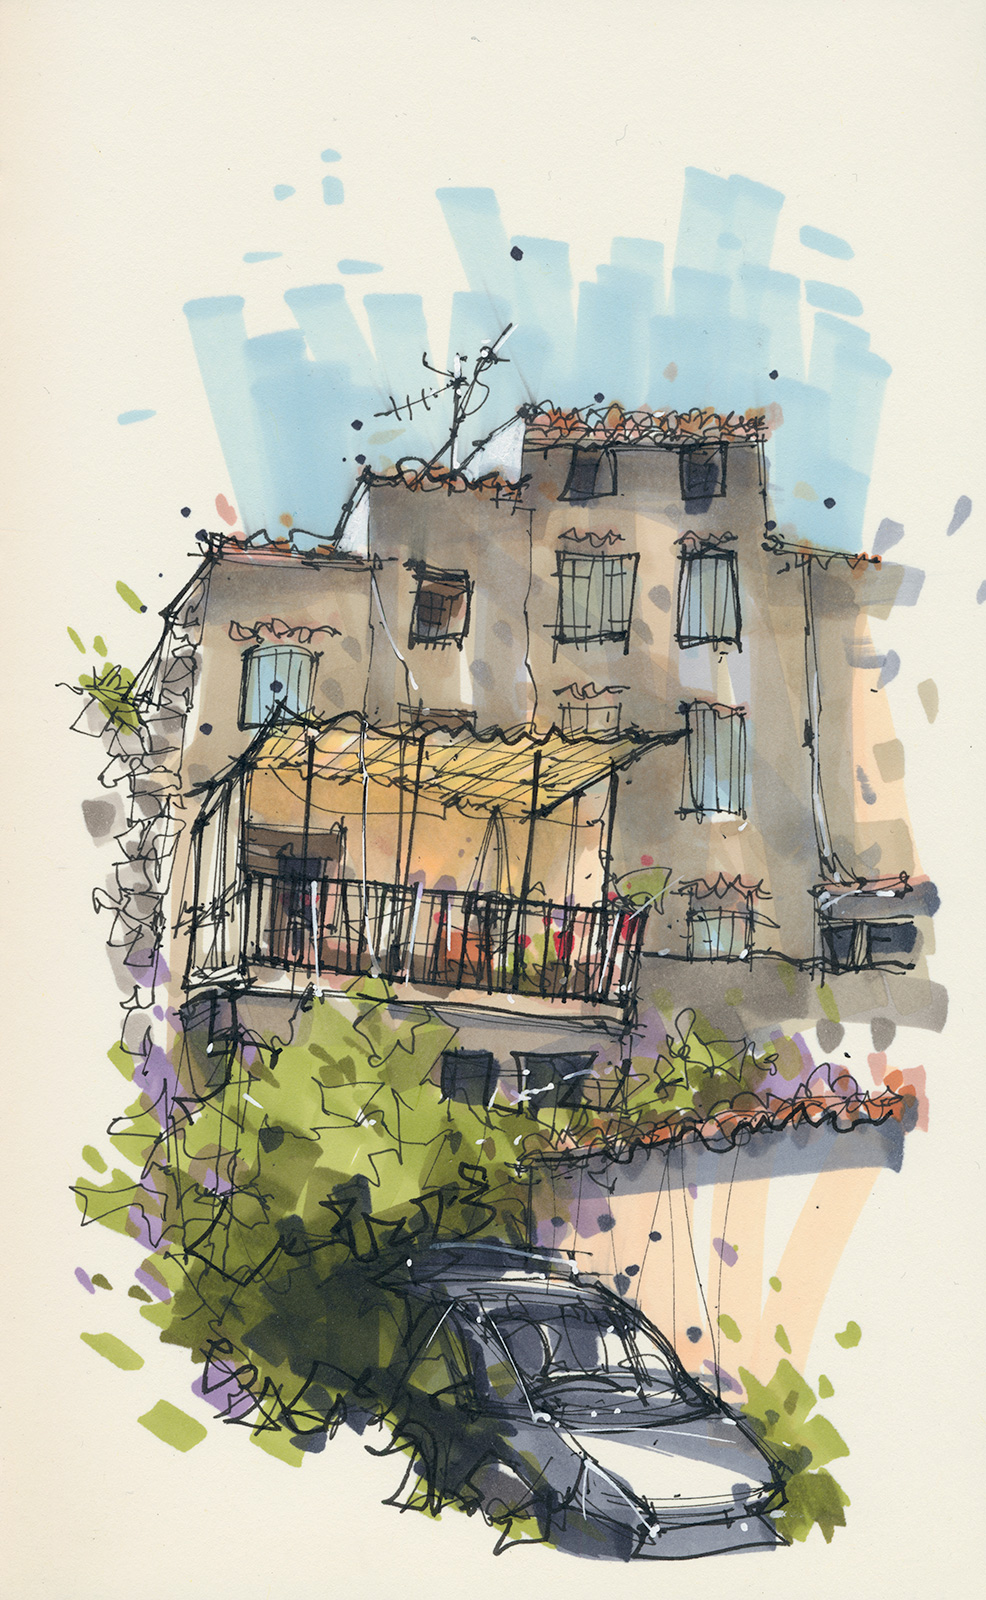 House with balcony on nameless street, Villecroze, France